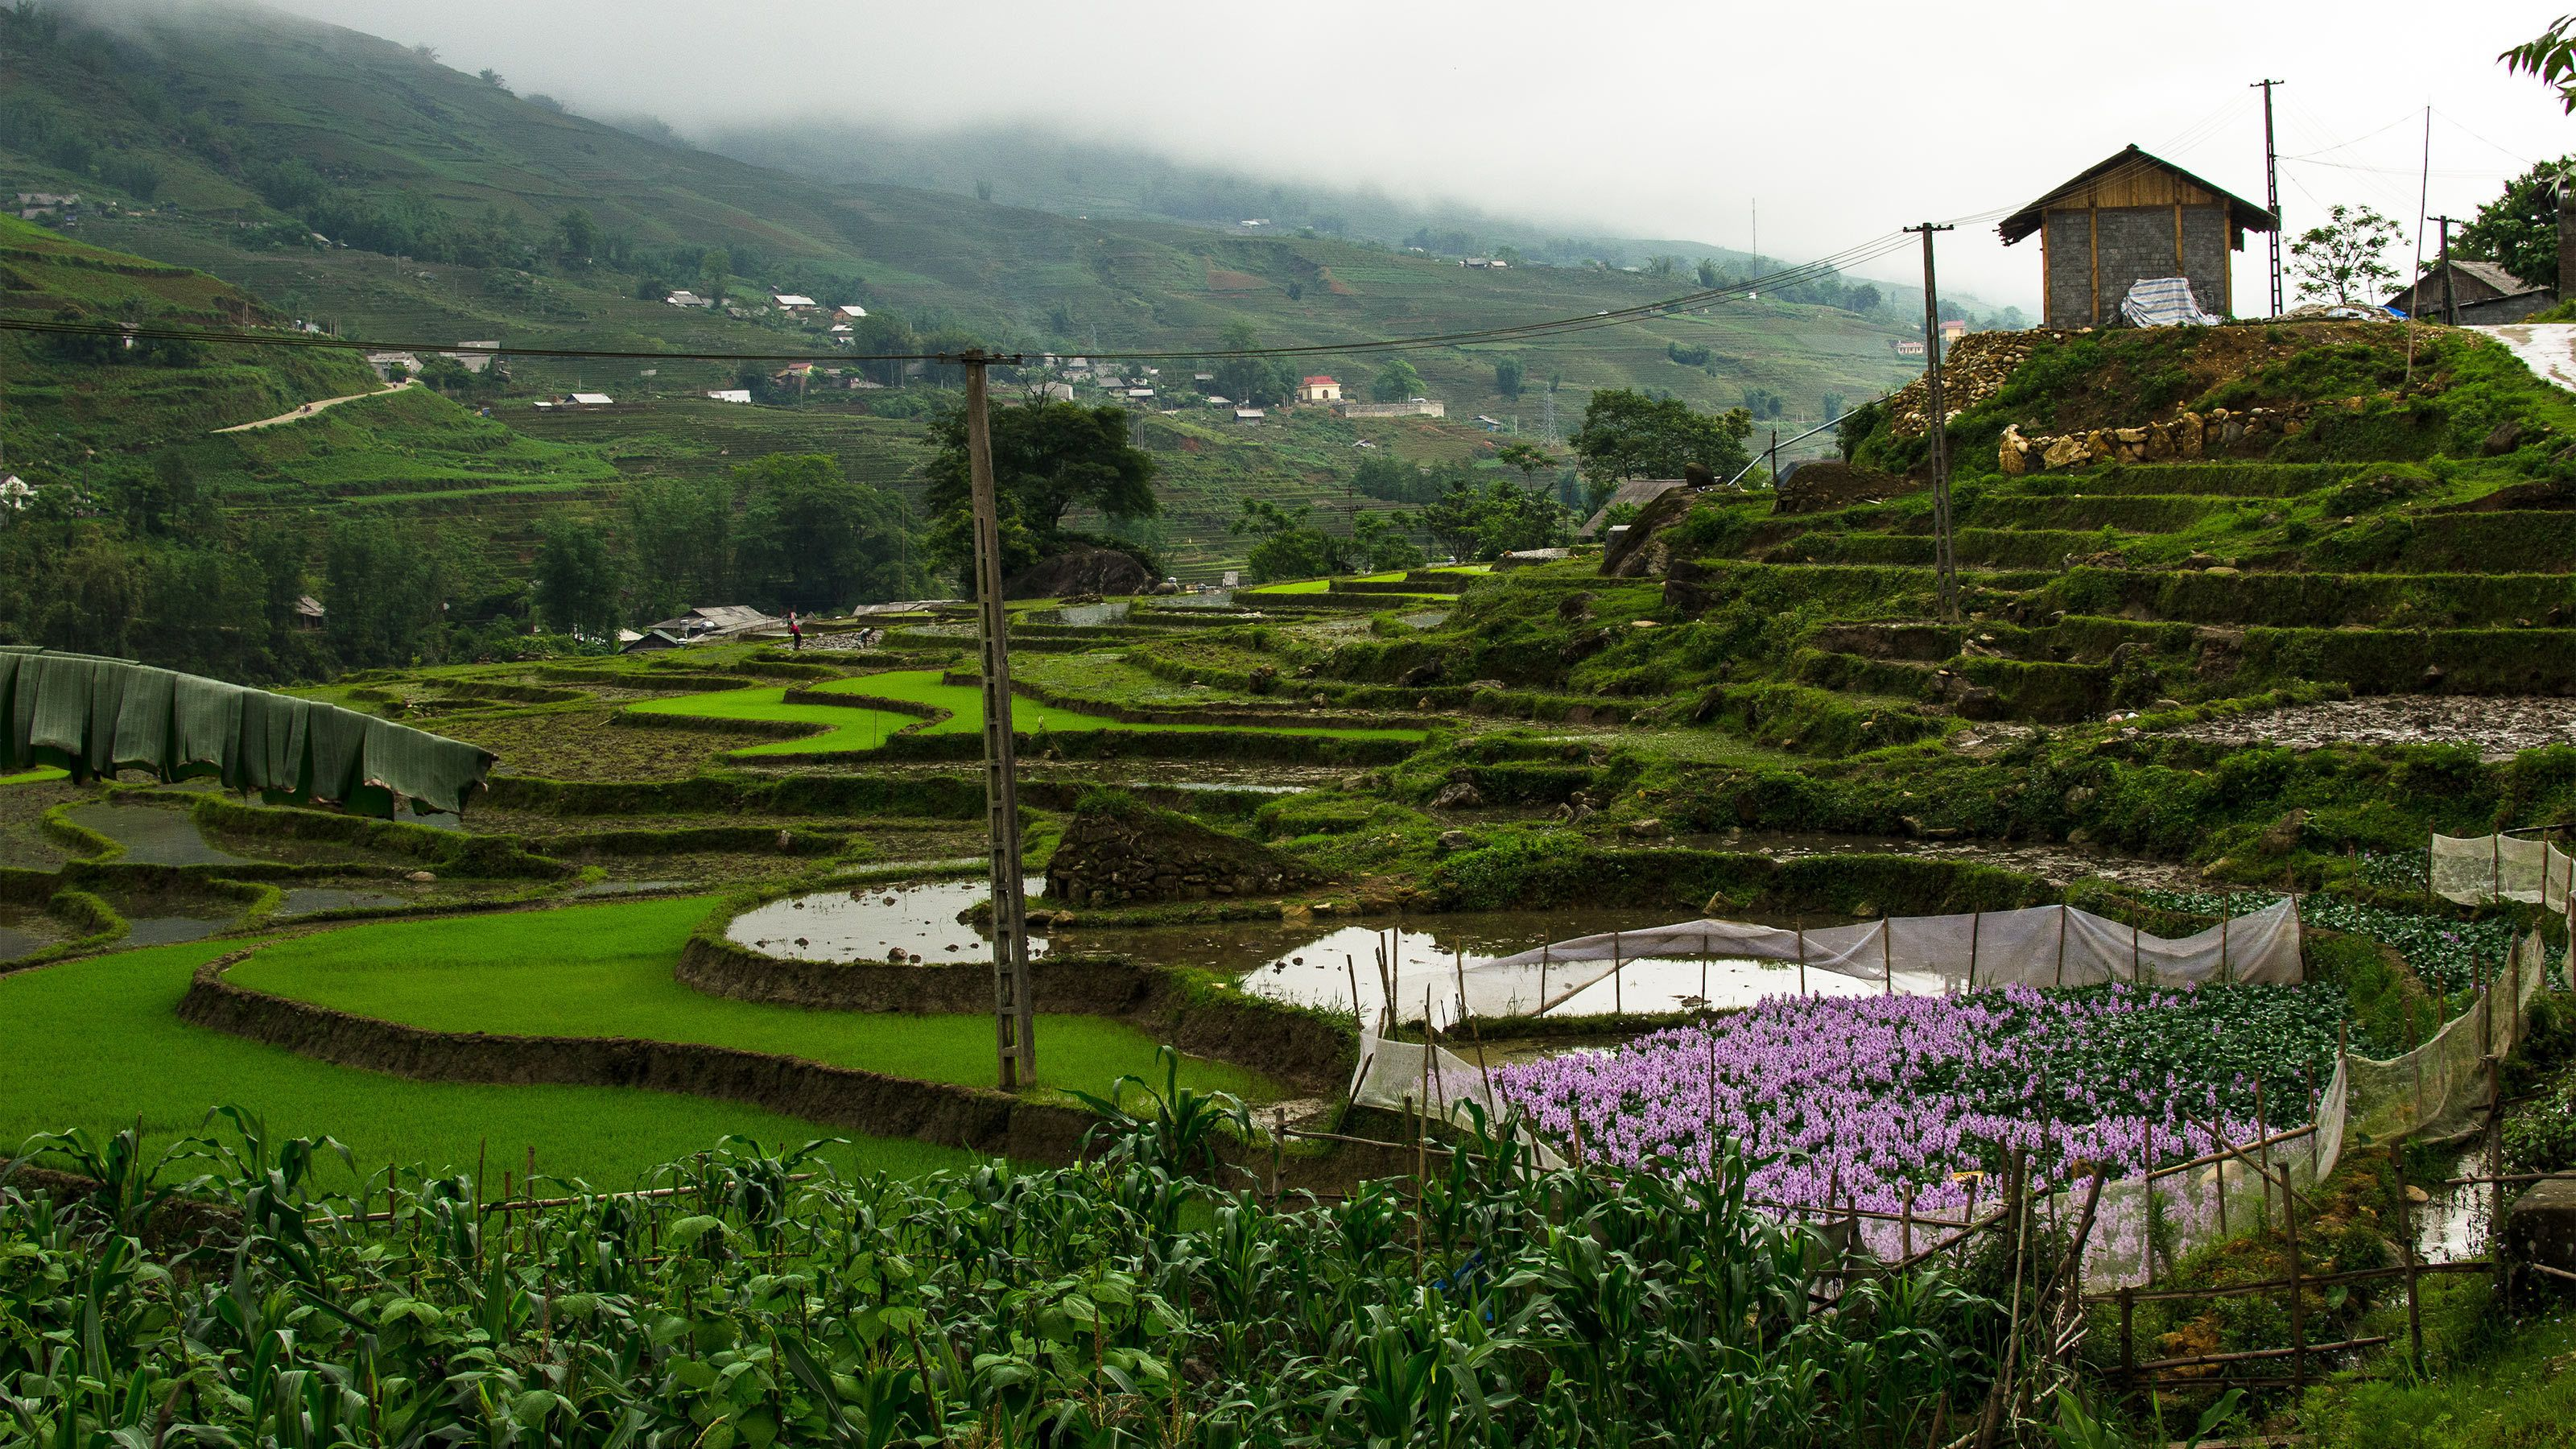 4-Day Sapa Tour with Home Stay